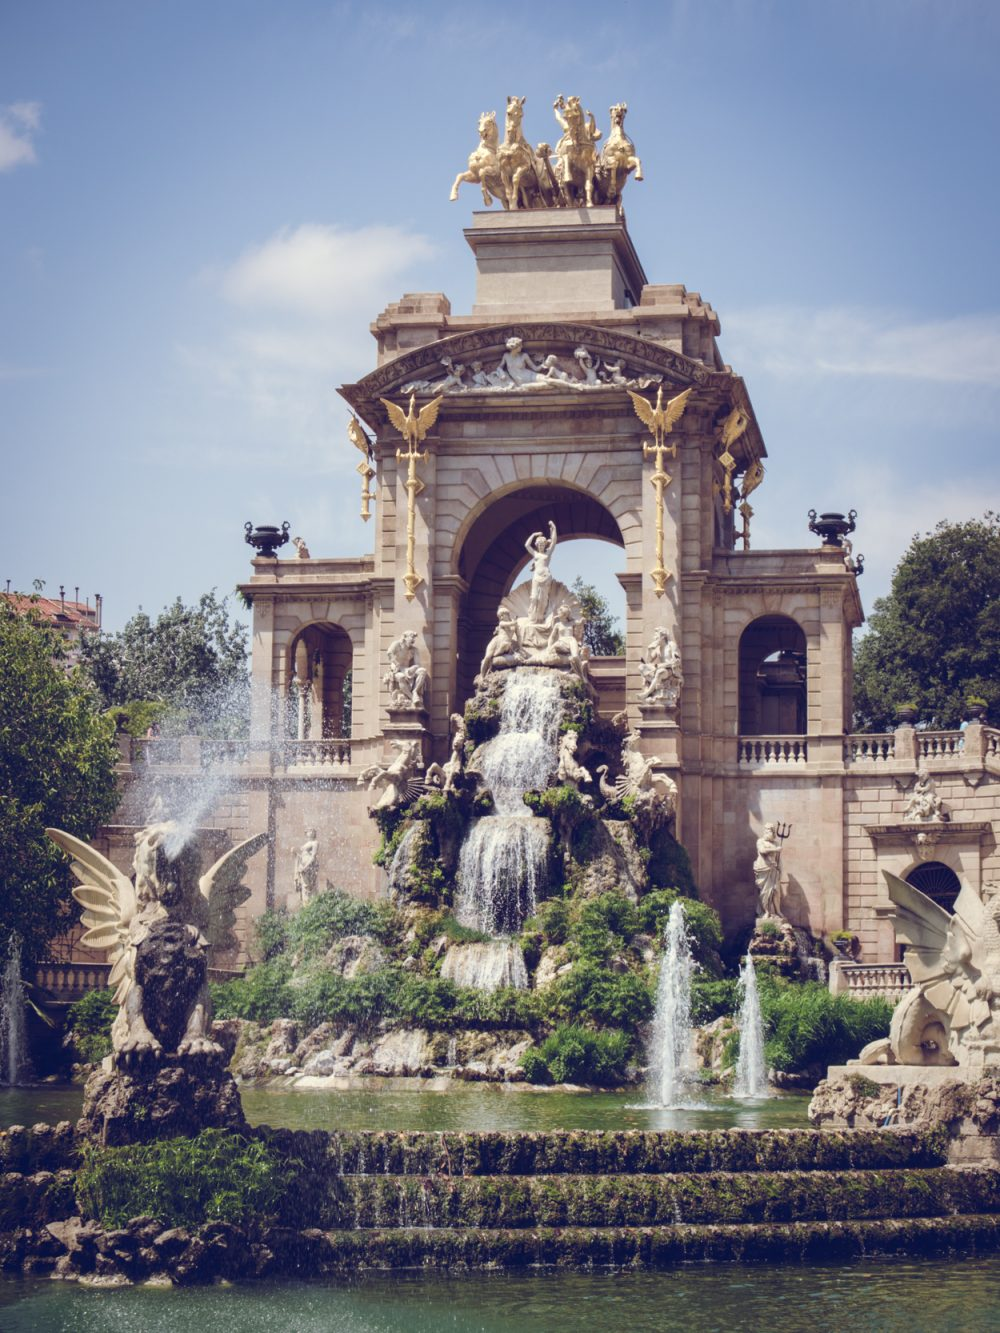 BARCELONA PART TWO || THECHICITALIAN || Part two of an impression of my trip to Barcelona